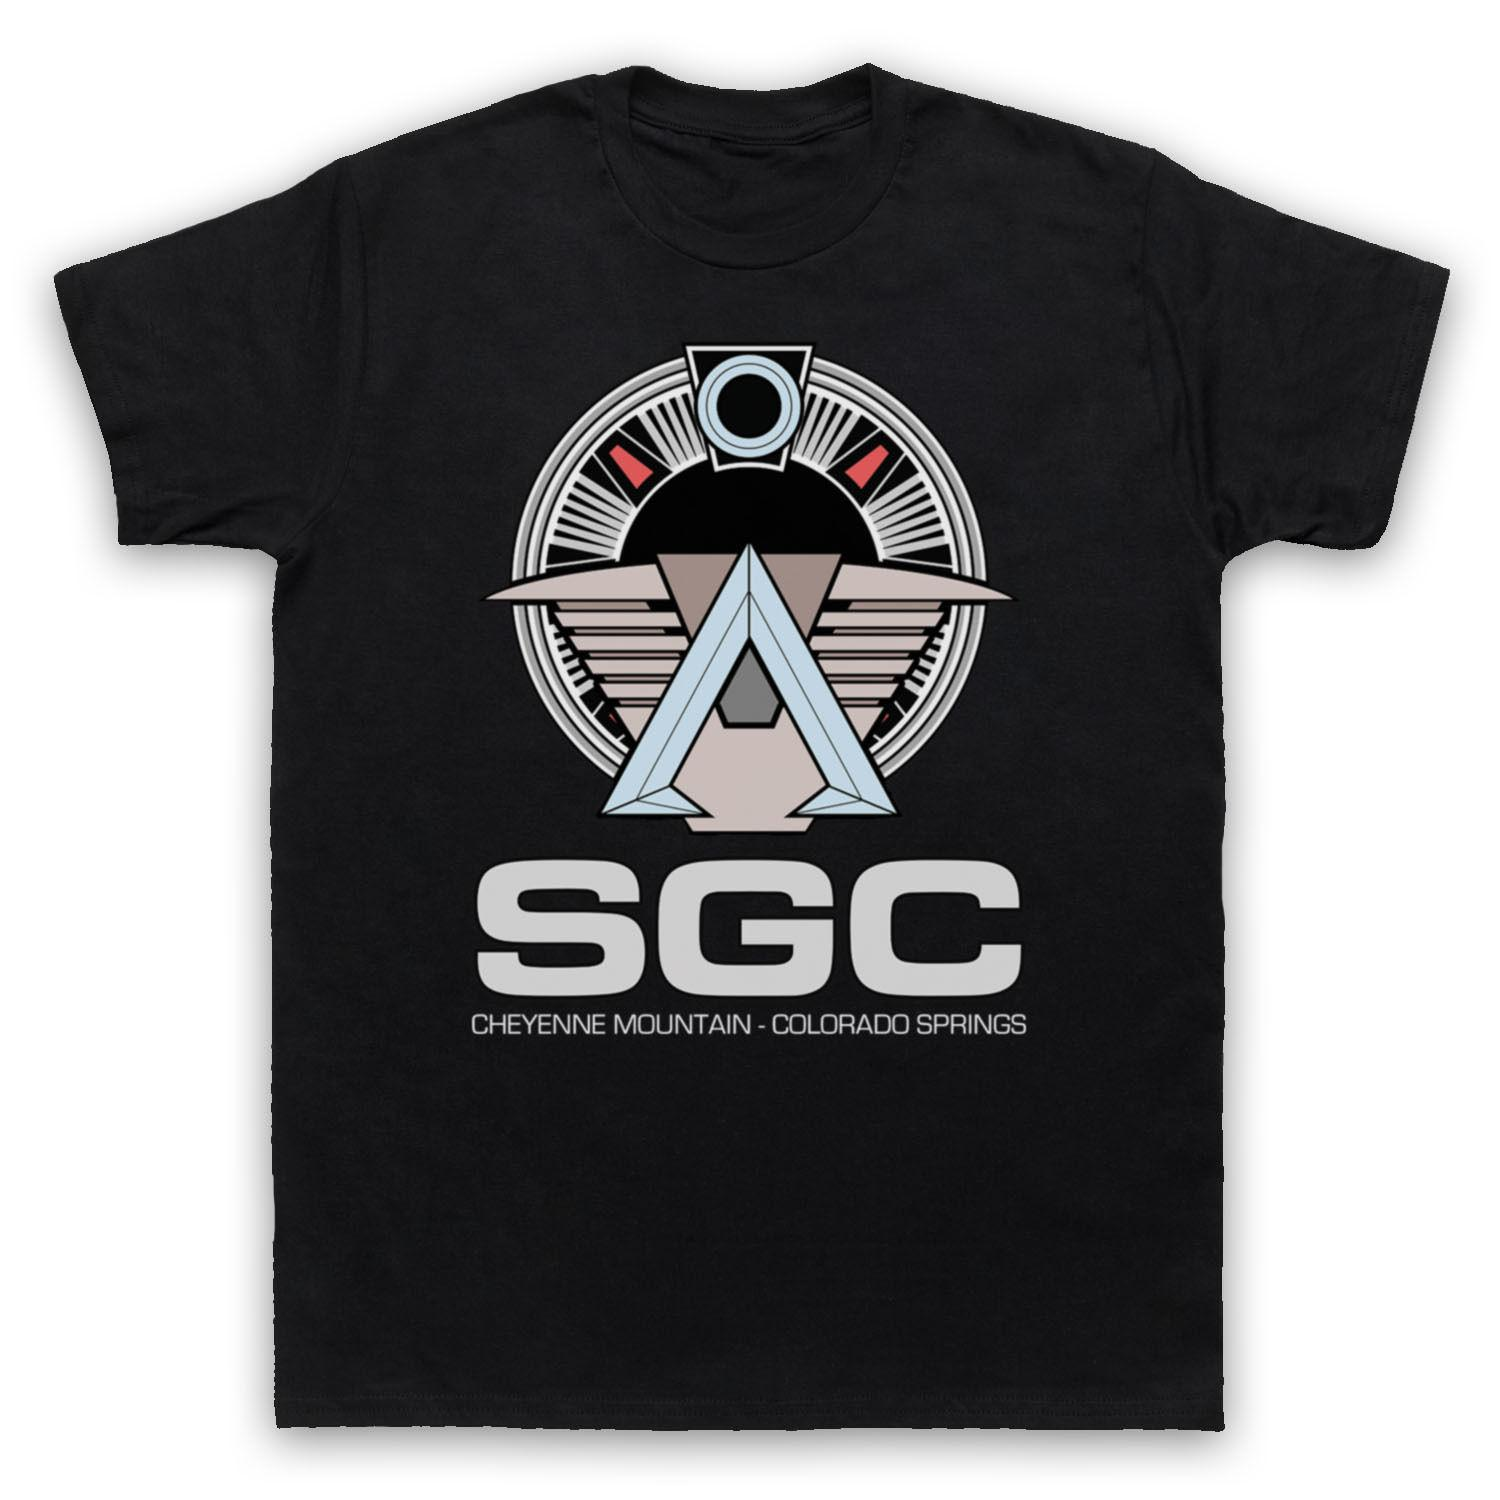 bc665975033 SGC STARGATE UNOFFICIAL STAR GATE COMMAND T SHIRT MENS LADIES KIDS SIZES    COLS Funny Unisex Casual Tshirt Top T Shirt Every Day Funny Cool Shirts  From ...